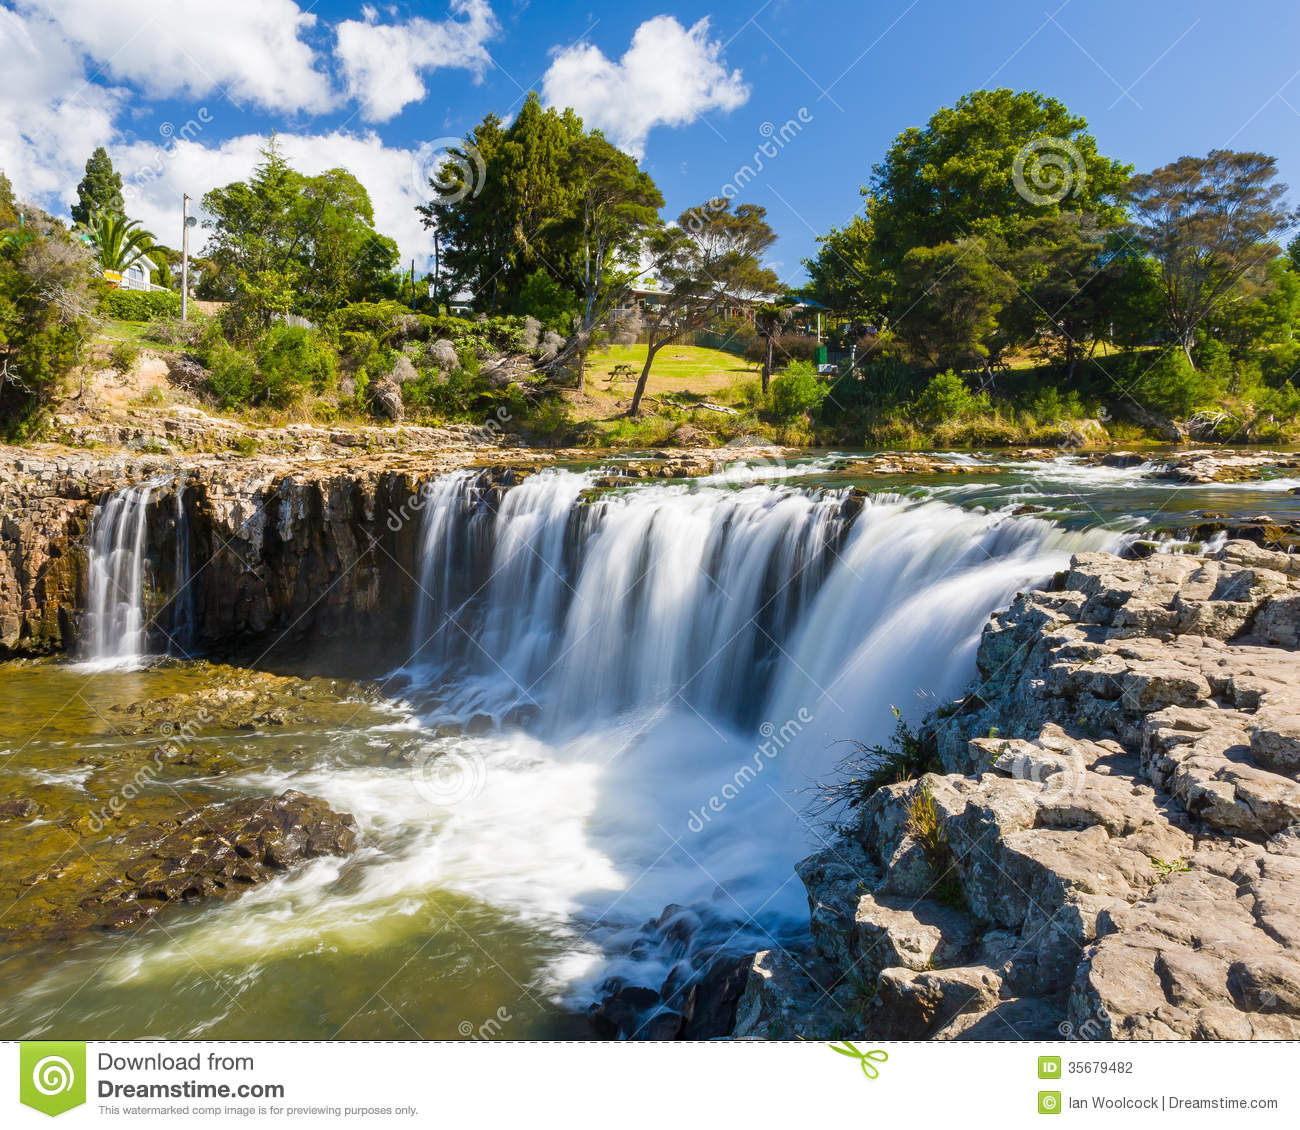 Calendar New Zealand Time Current Local Time In New Zealand Time And Date Haruru Falls Paihia Northland New Zealand Stock Photo